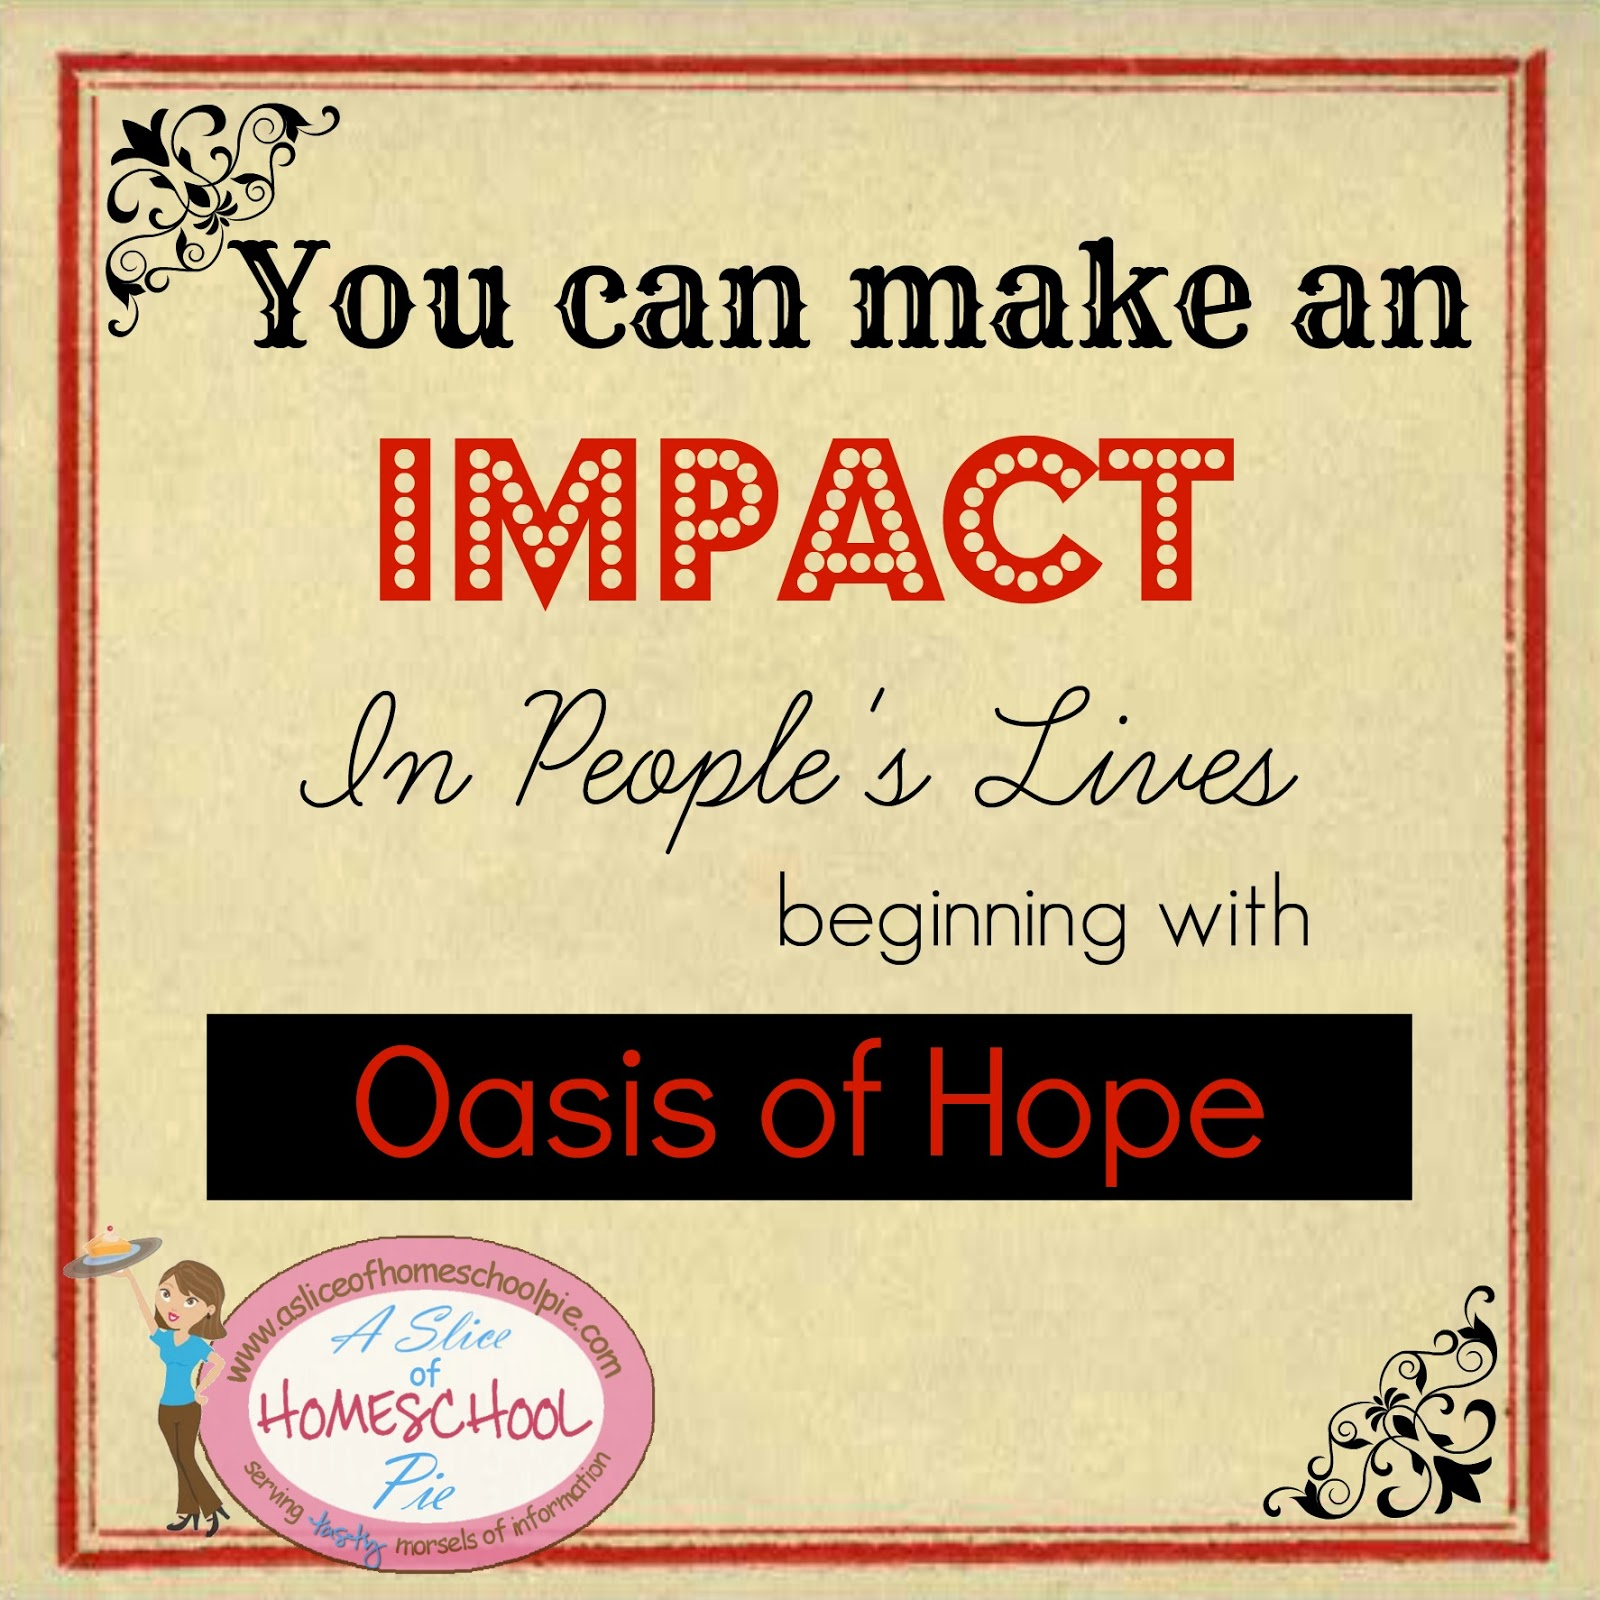 Oasis-Of-Hope-by-ASliceOfHomeschoolPie